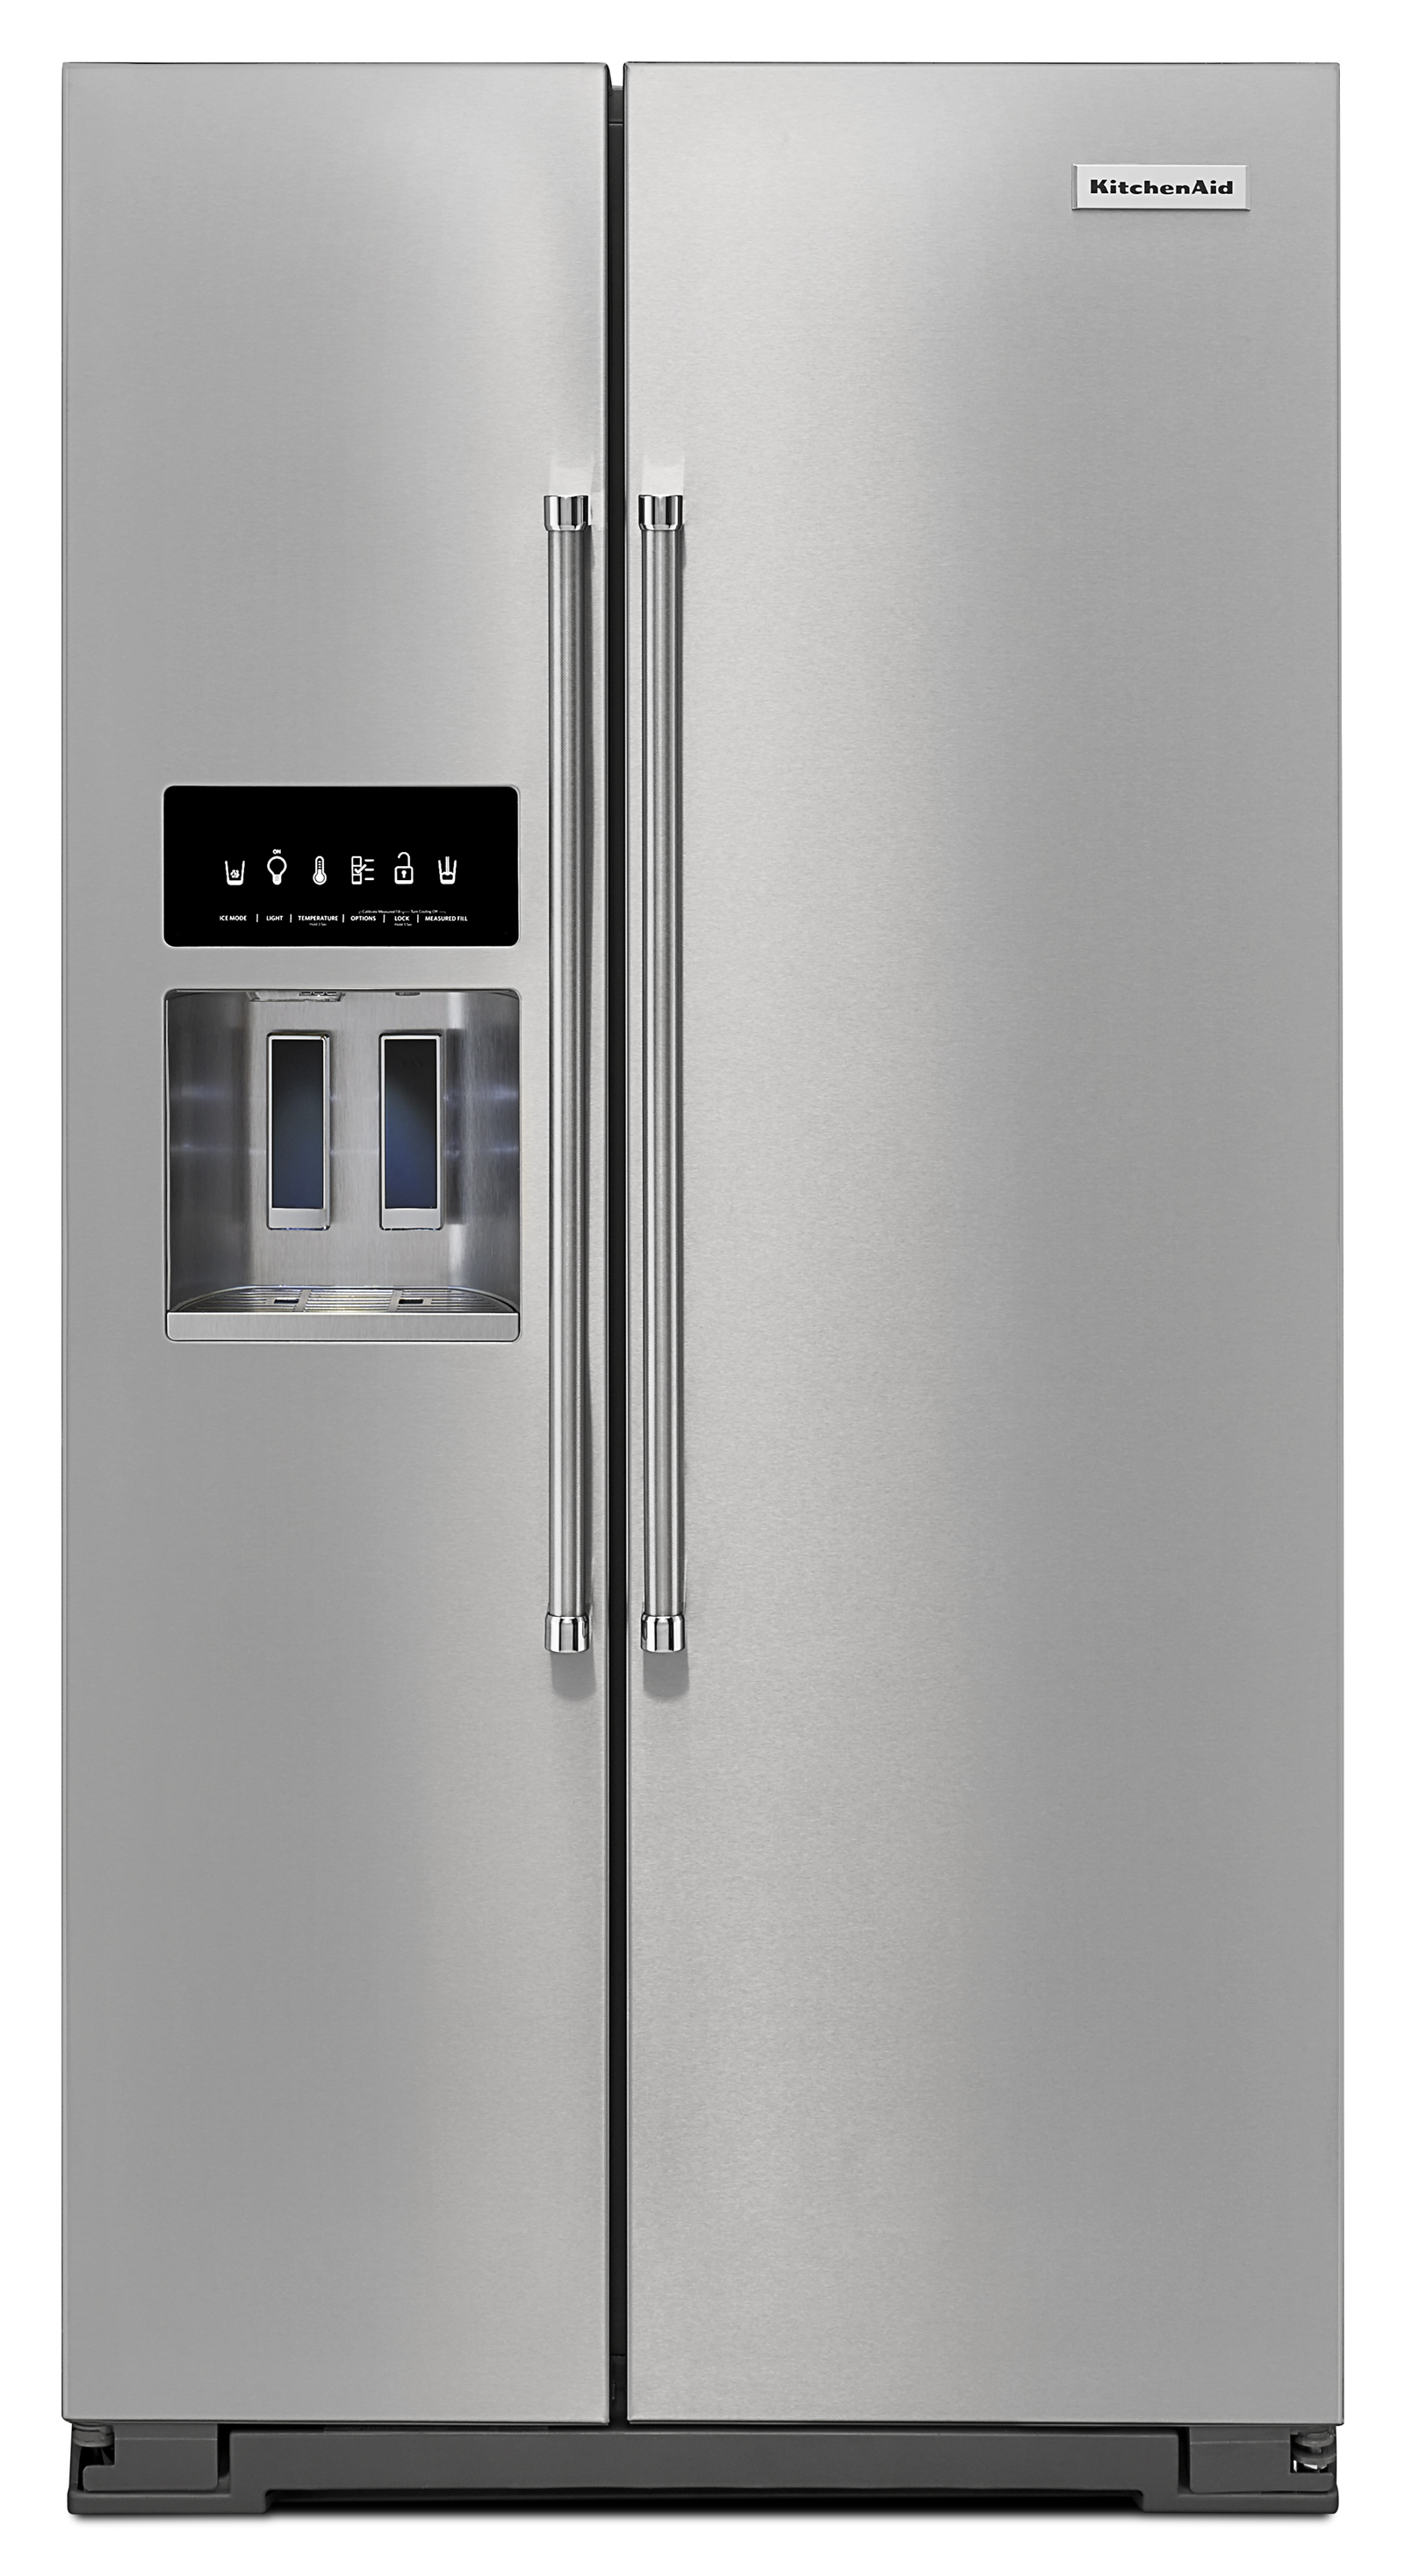 KitchenAid KRSF505ESS 24.8 cu. ft. Side-by-Side Refrigerator - Stainless Steel